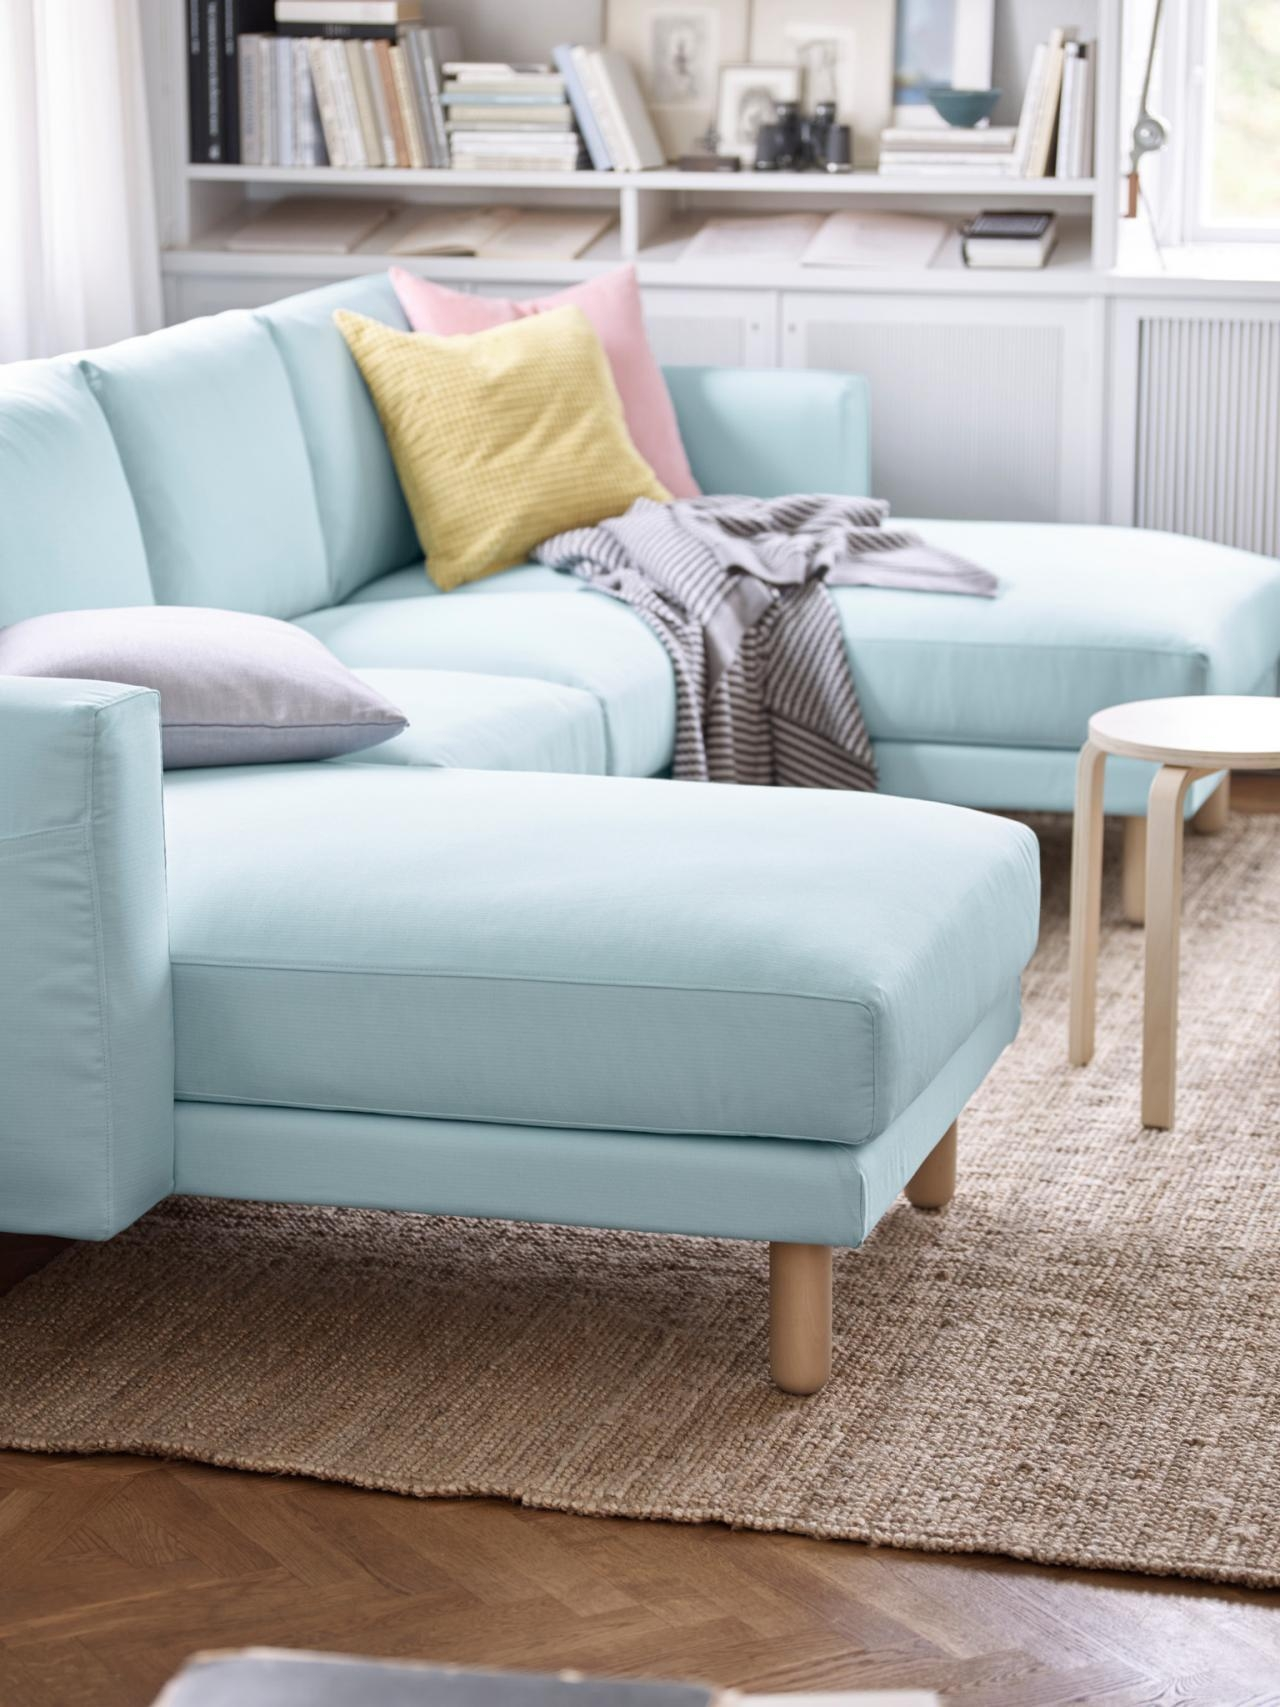 5 Apartment Sized Sofas That Are Lifesavers | Hgtv's Decorating regarding Sectional Small Spaces